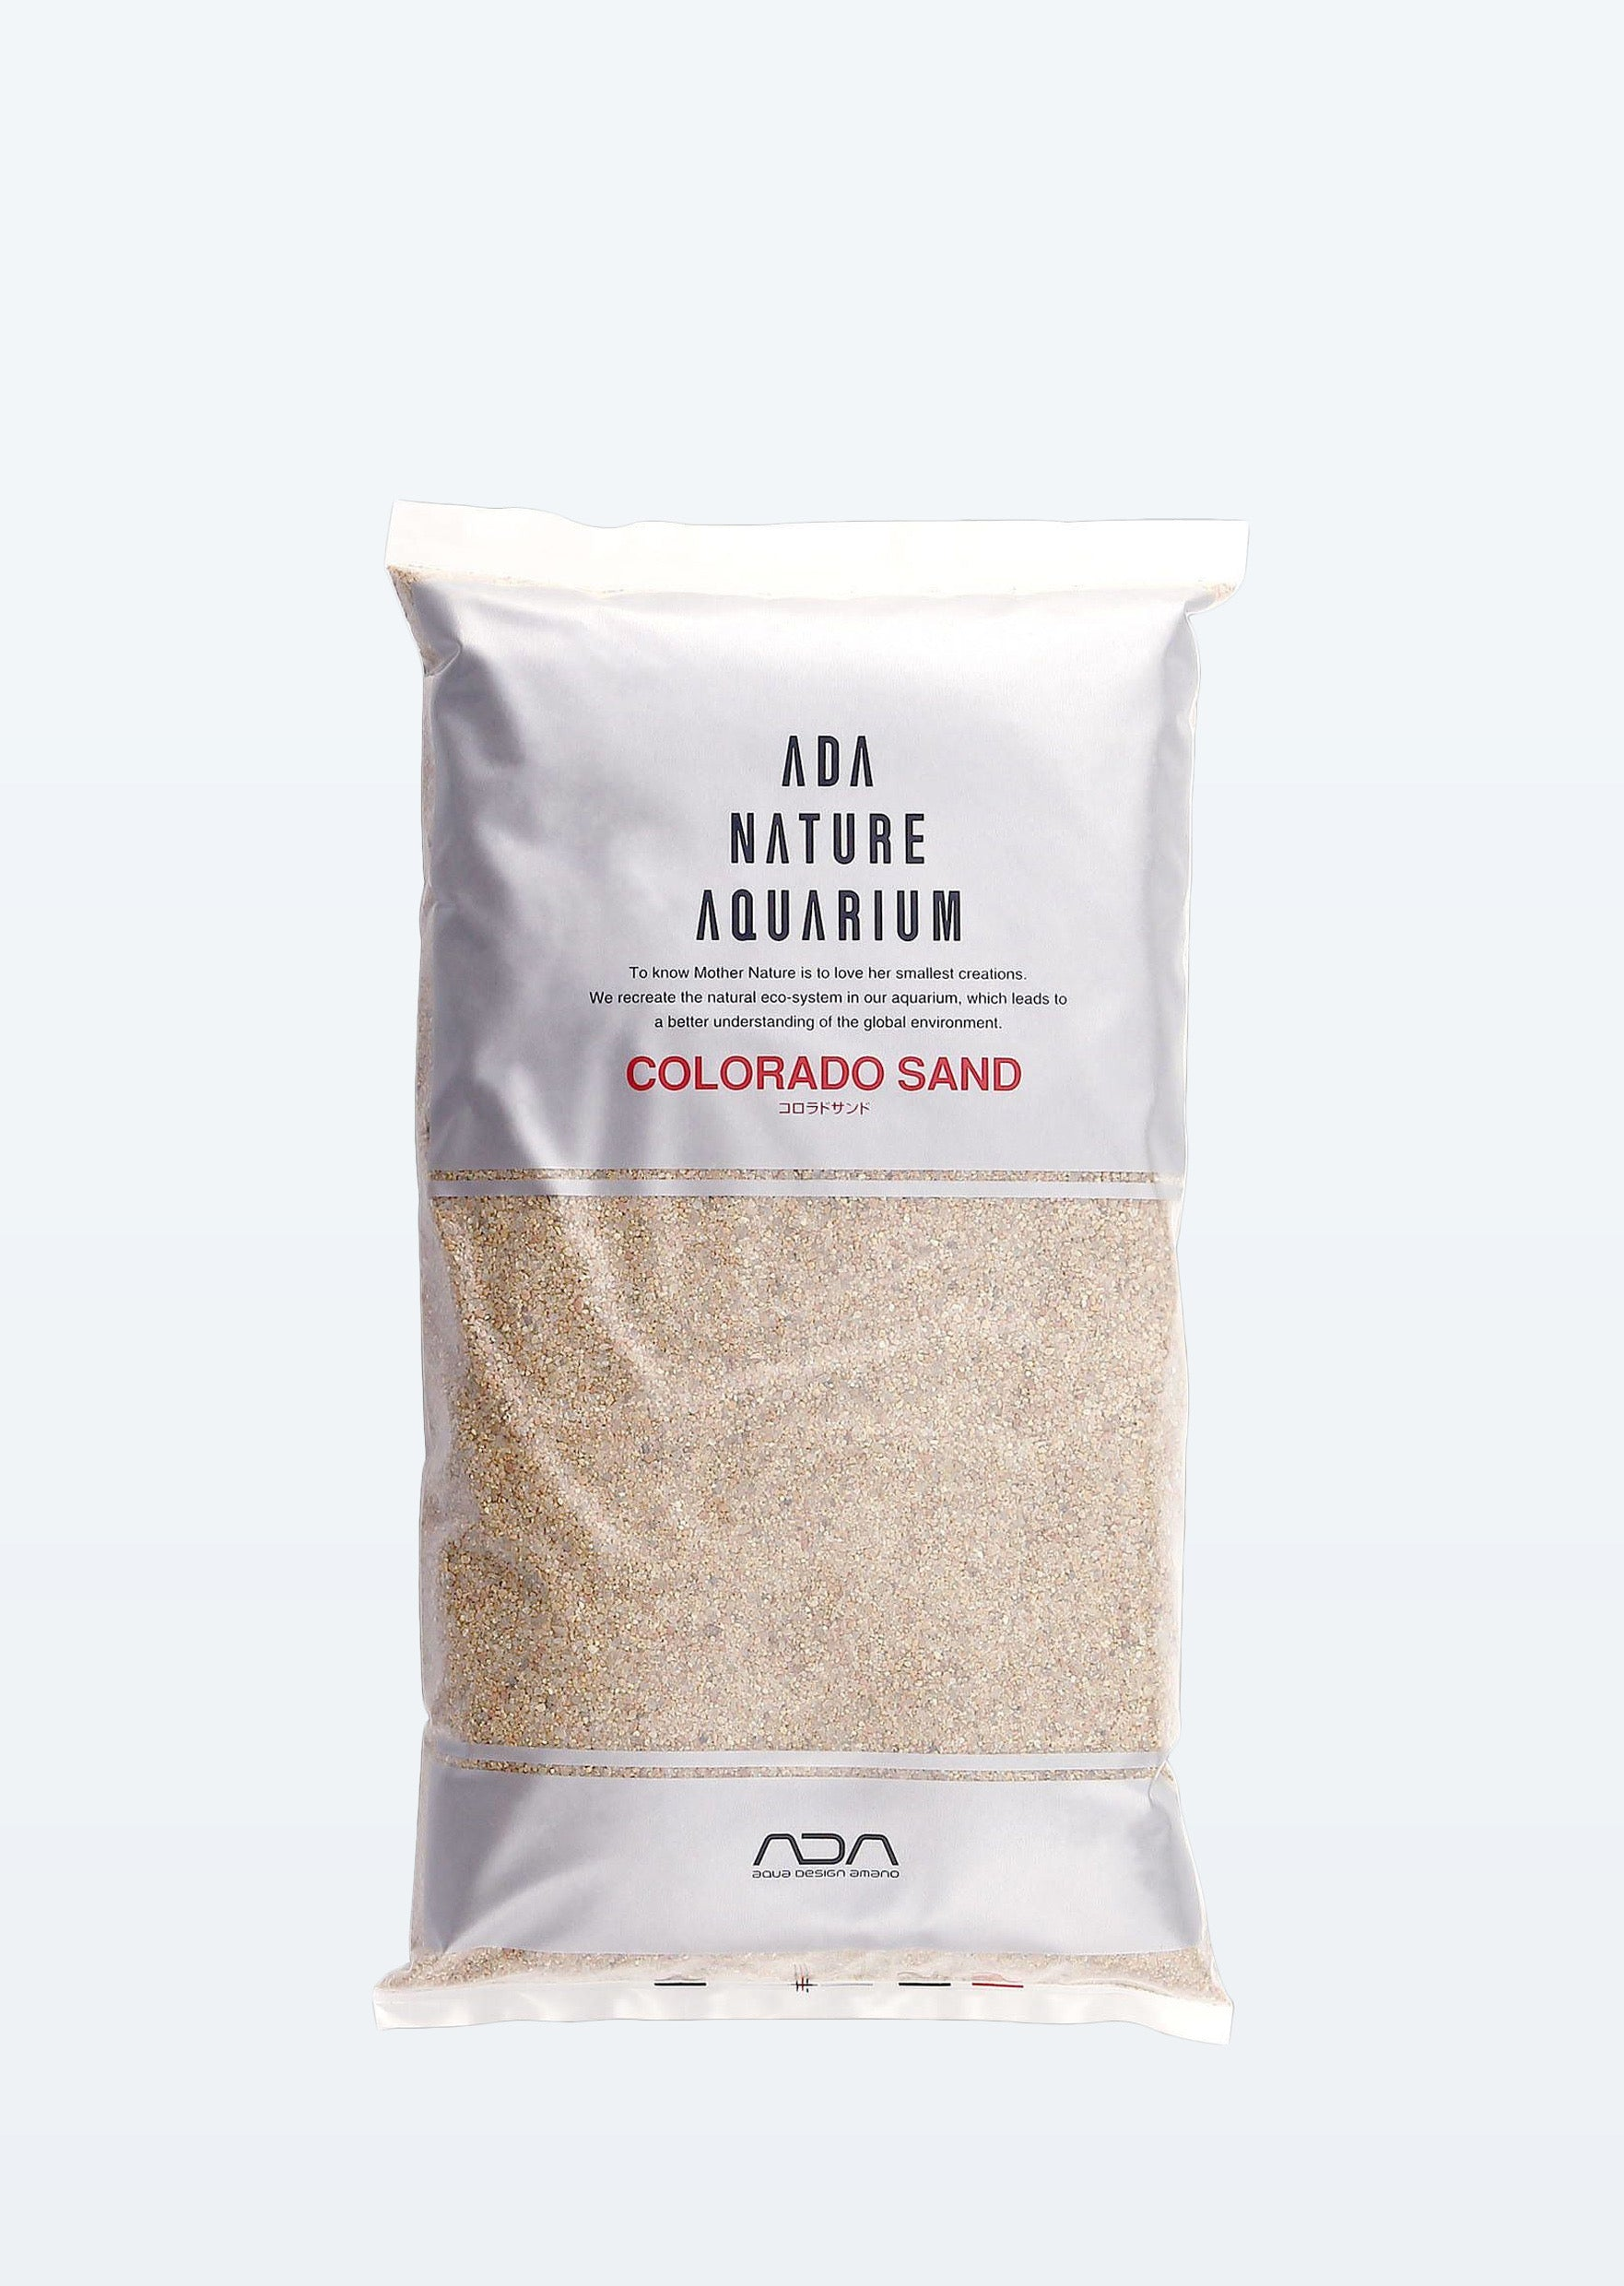 ADA Sand Colorado Cosmetic